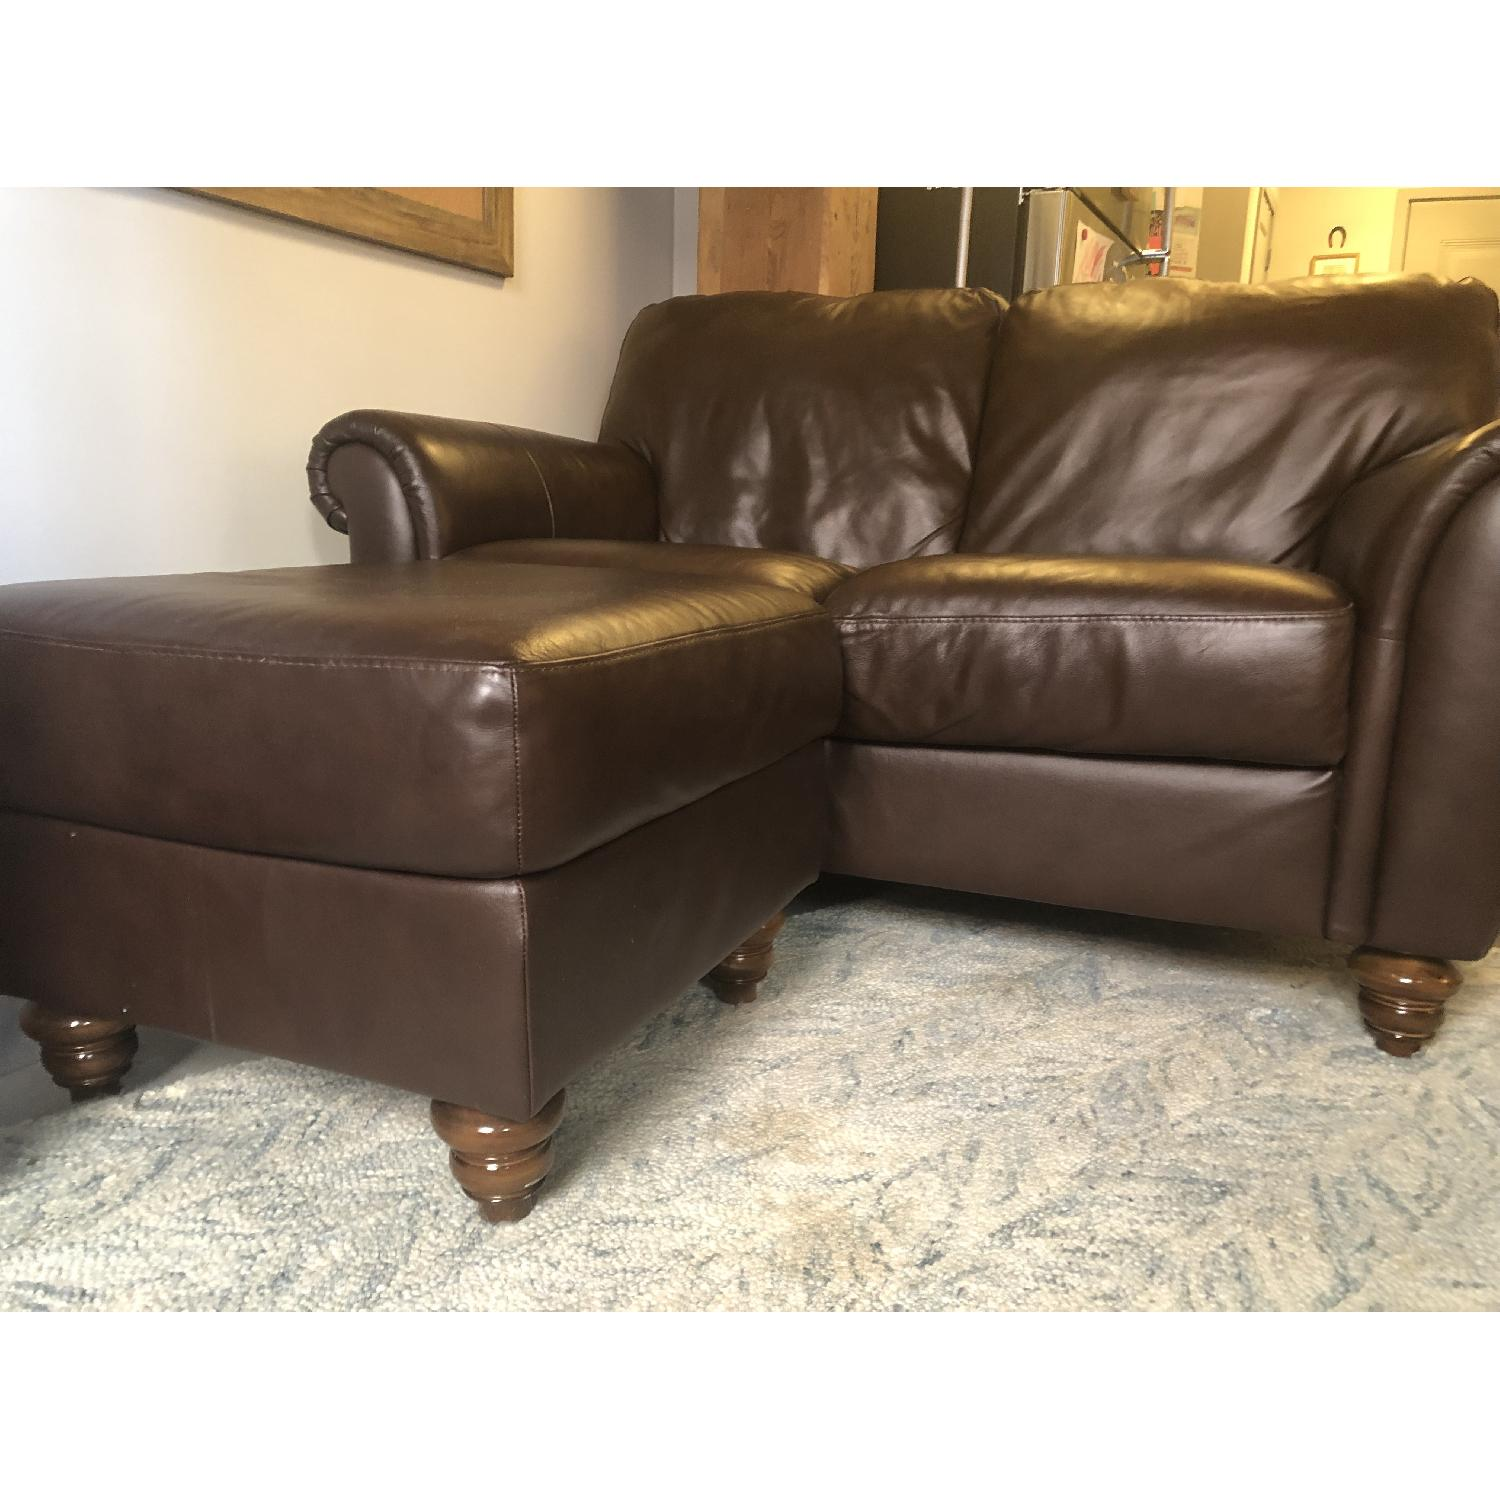 Macy's Italsofa Brown Leather Rolled Arm Loveseat & Ottoman - image-1